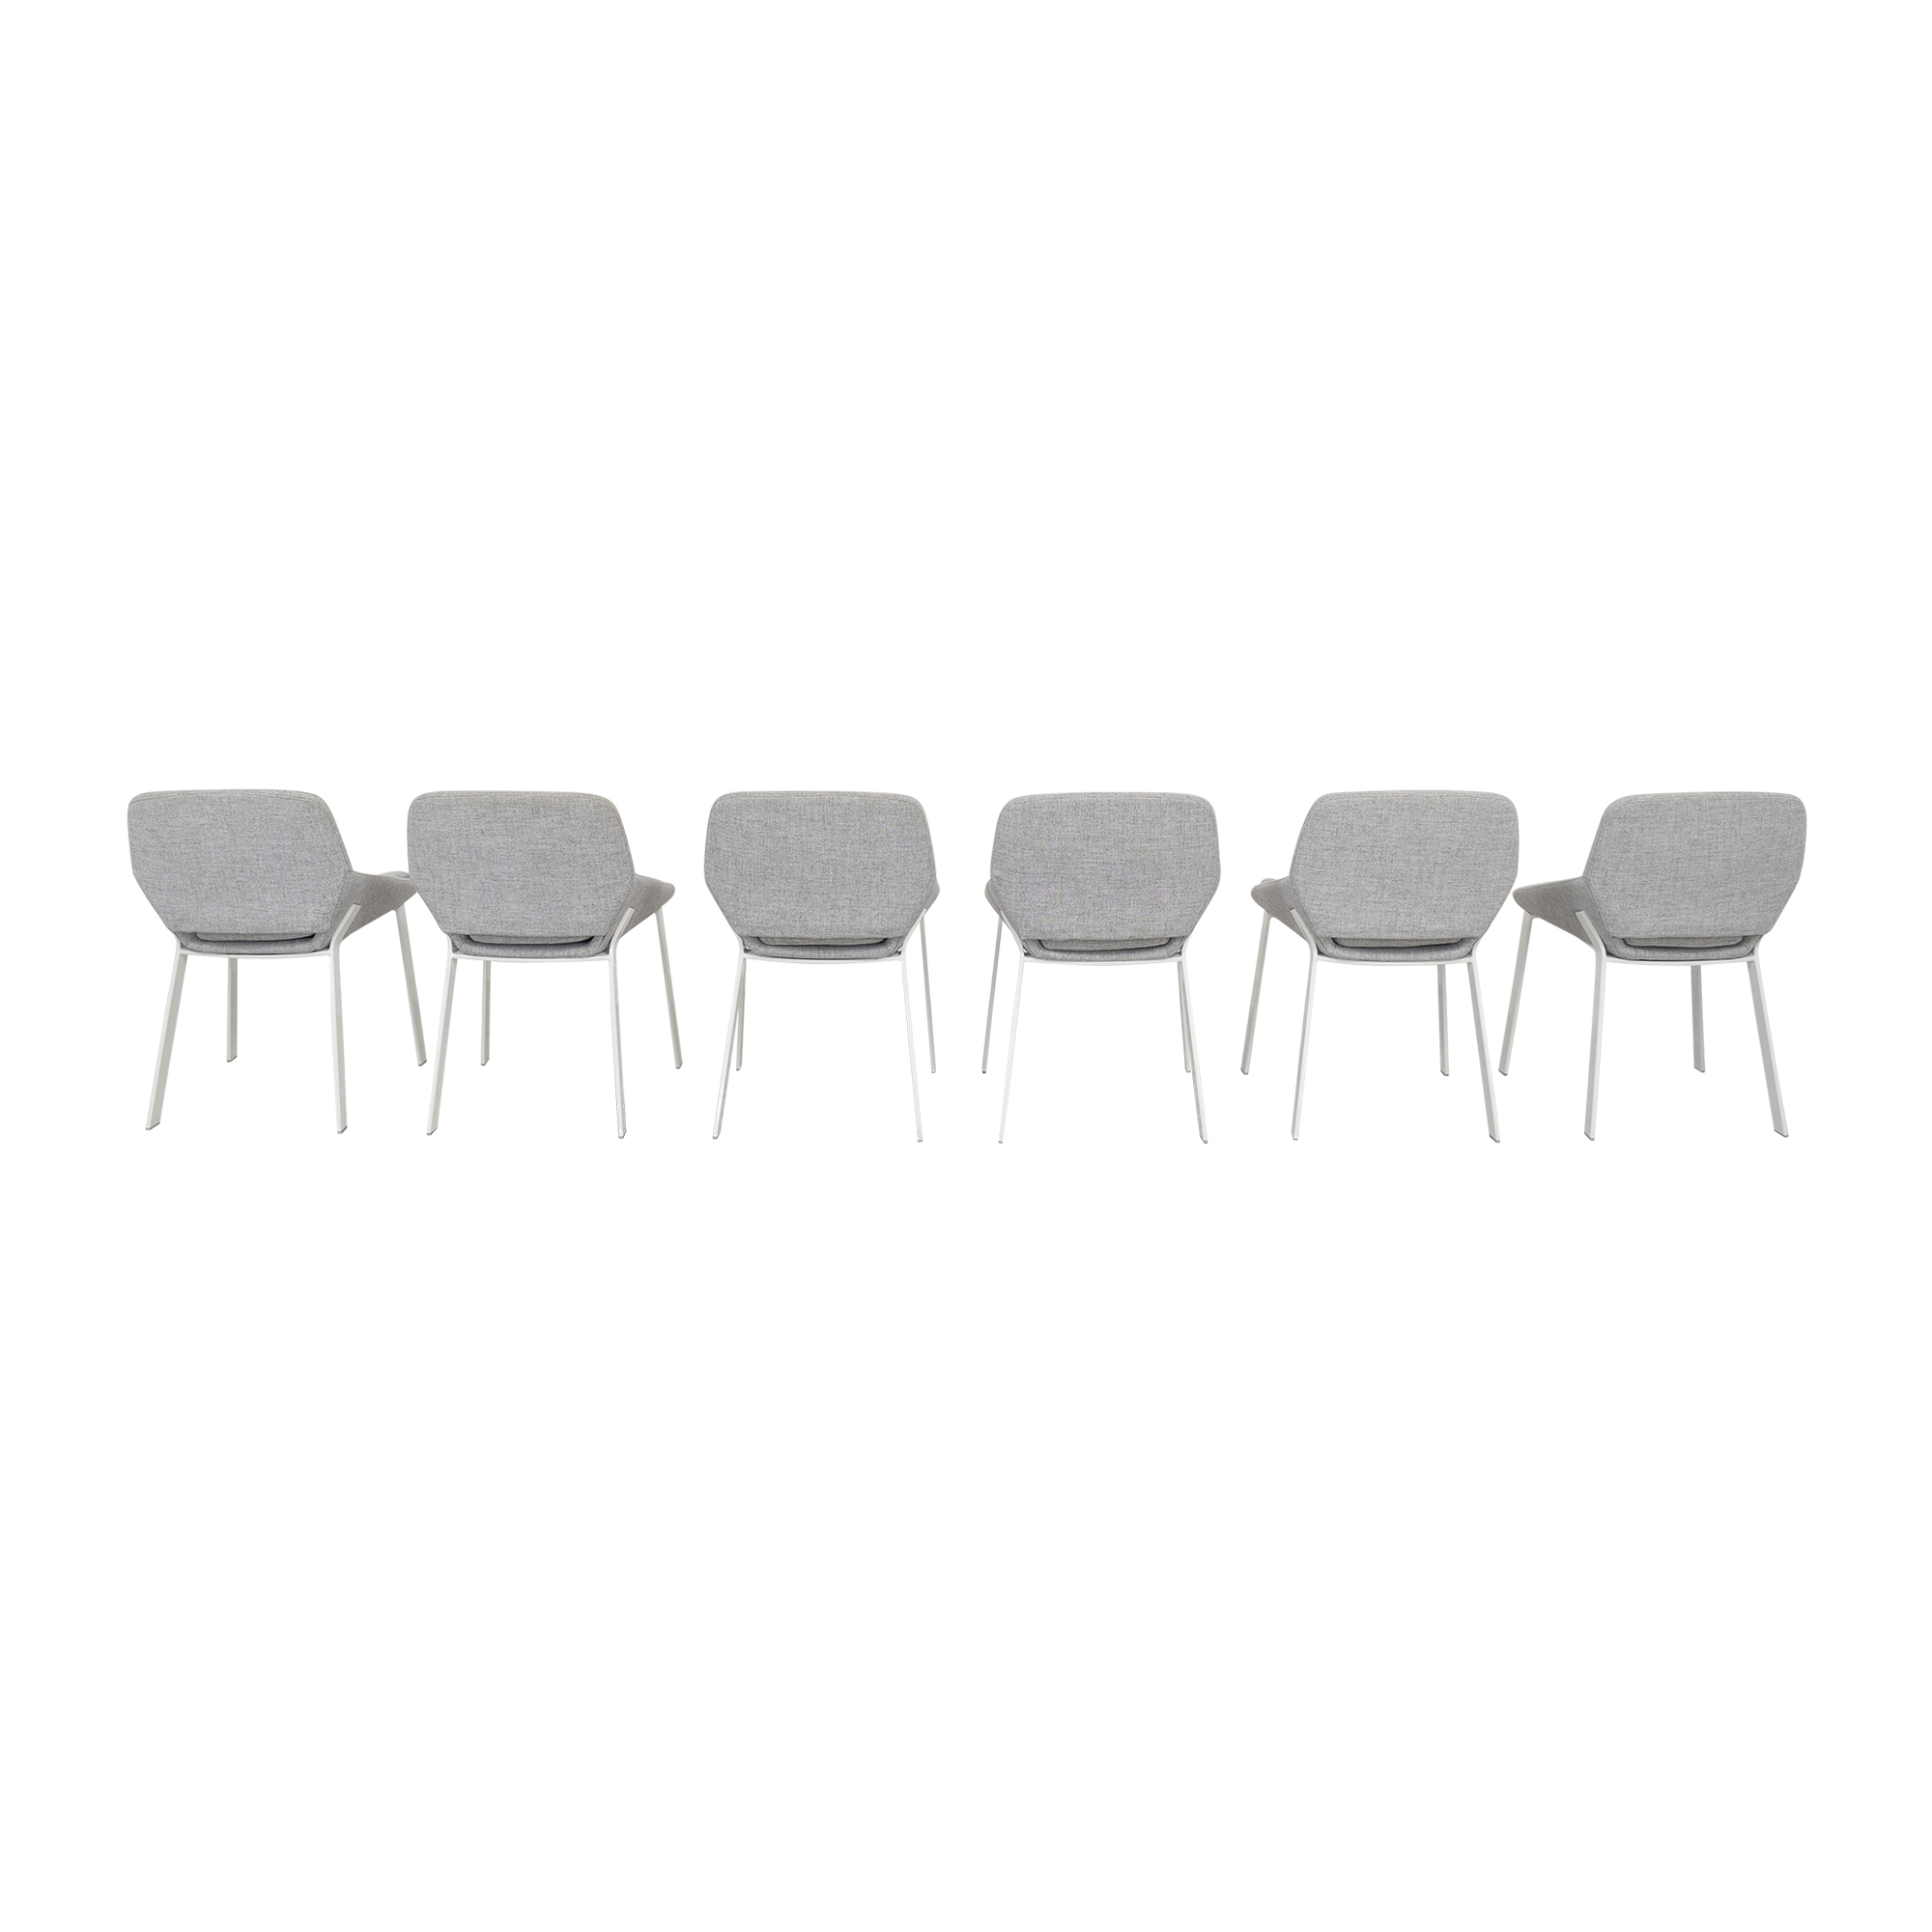 Target Target Modern by Dwell Magazine Dining Chairs ma